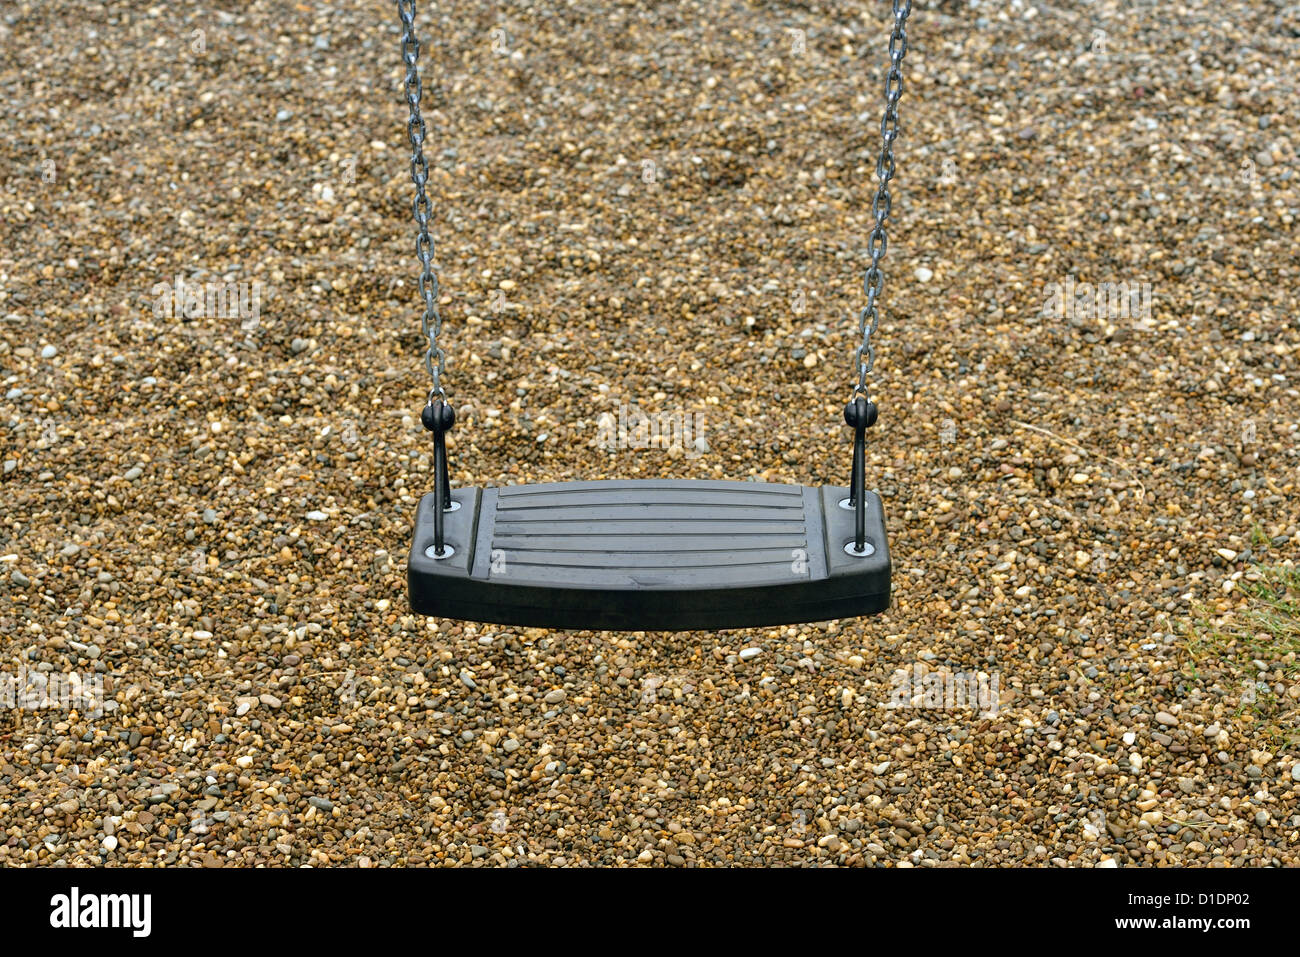 Empty playground swing in a empty park. - Stock Image